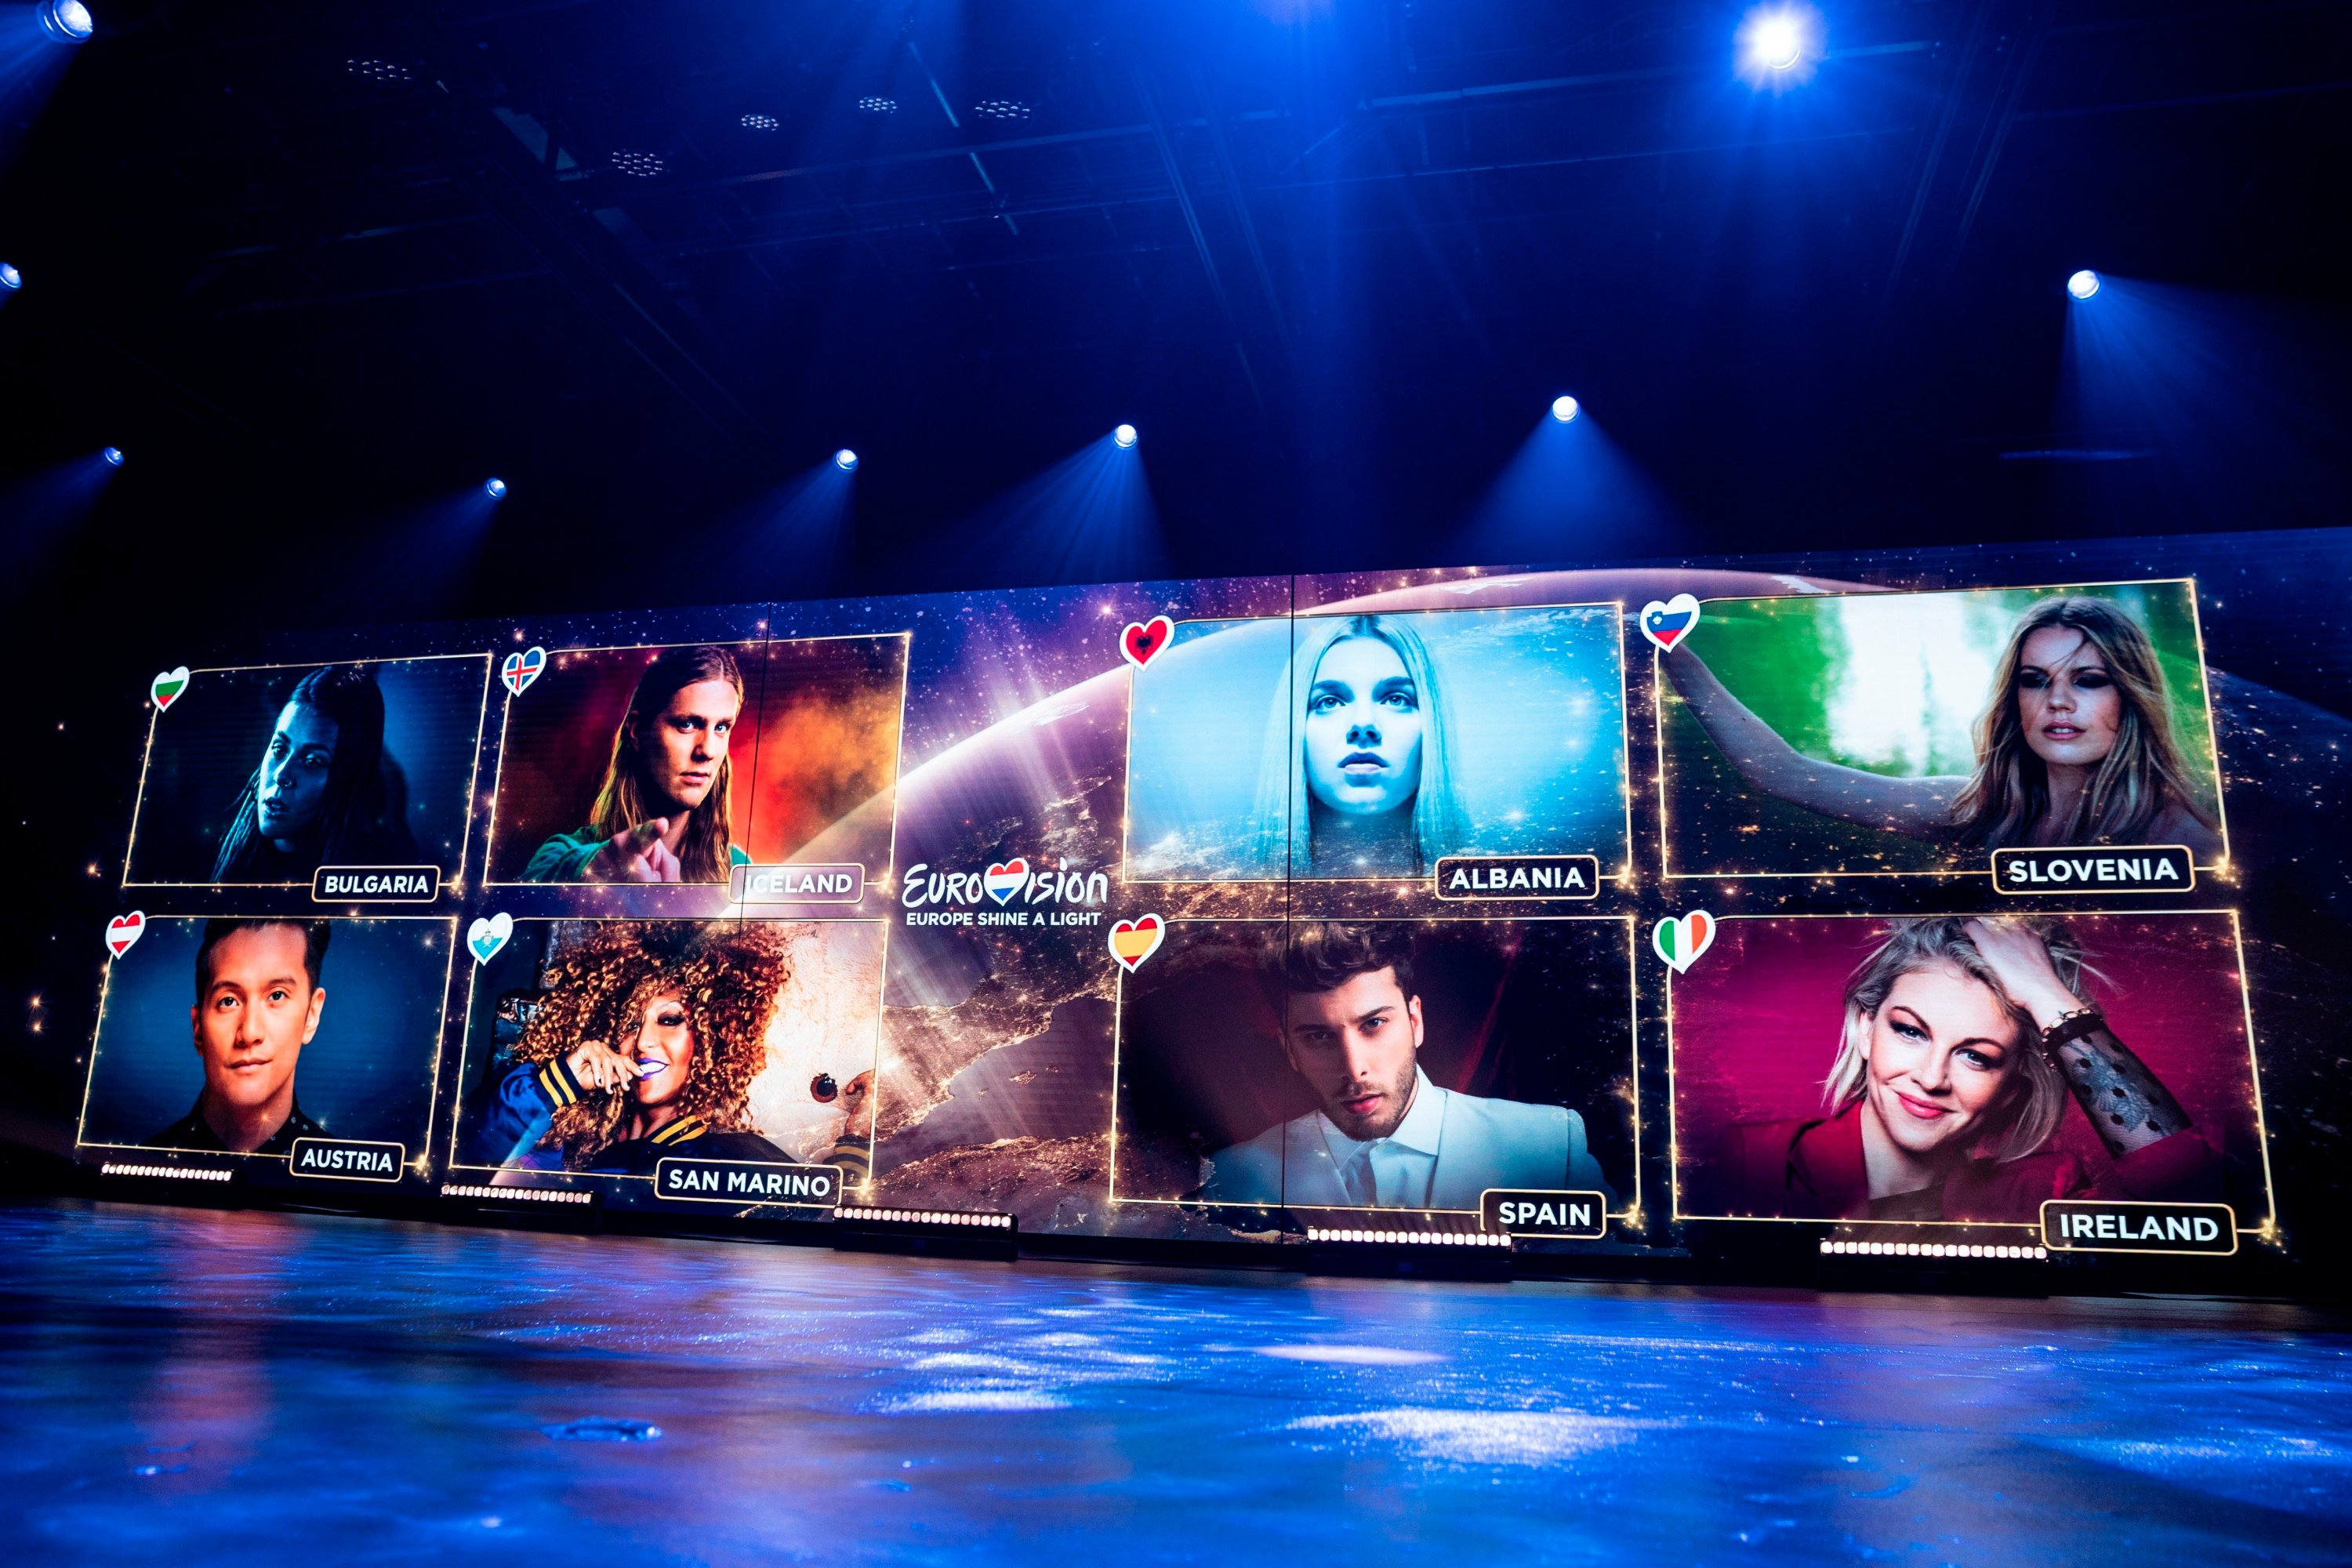 In this Saturday, May 16, 2020 image, artists are shown on screens during the Eurovision's Europe Shine A Light remote television show, in Hilversum, Netherlands. (AP Photo)